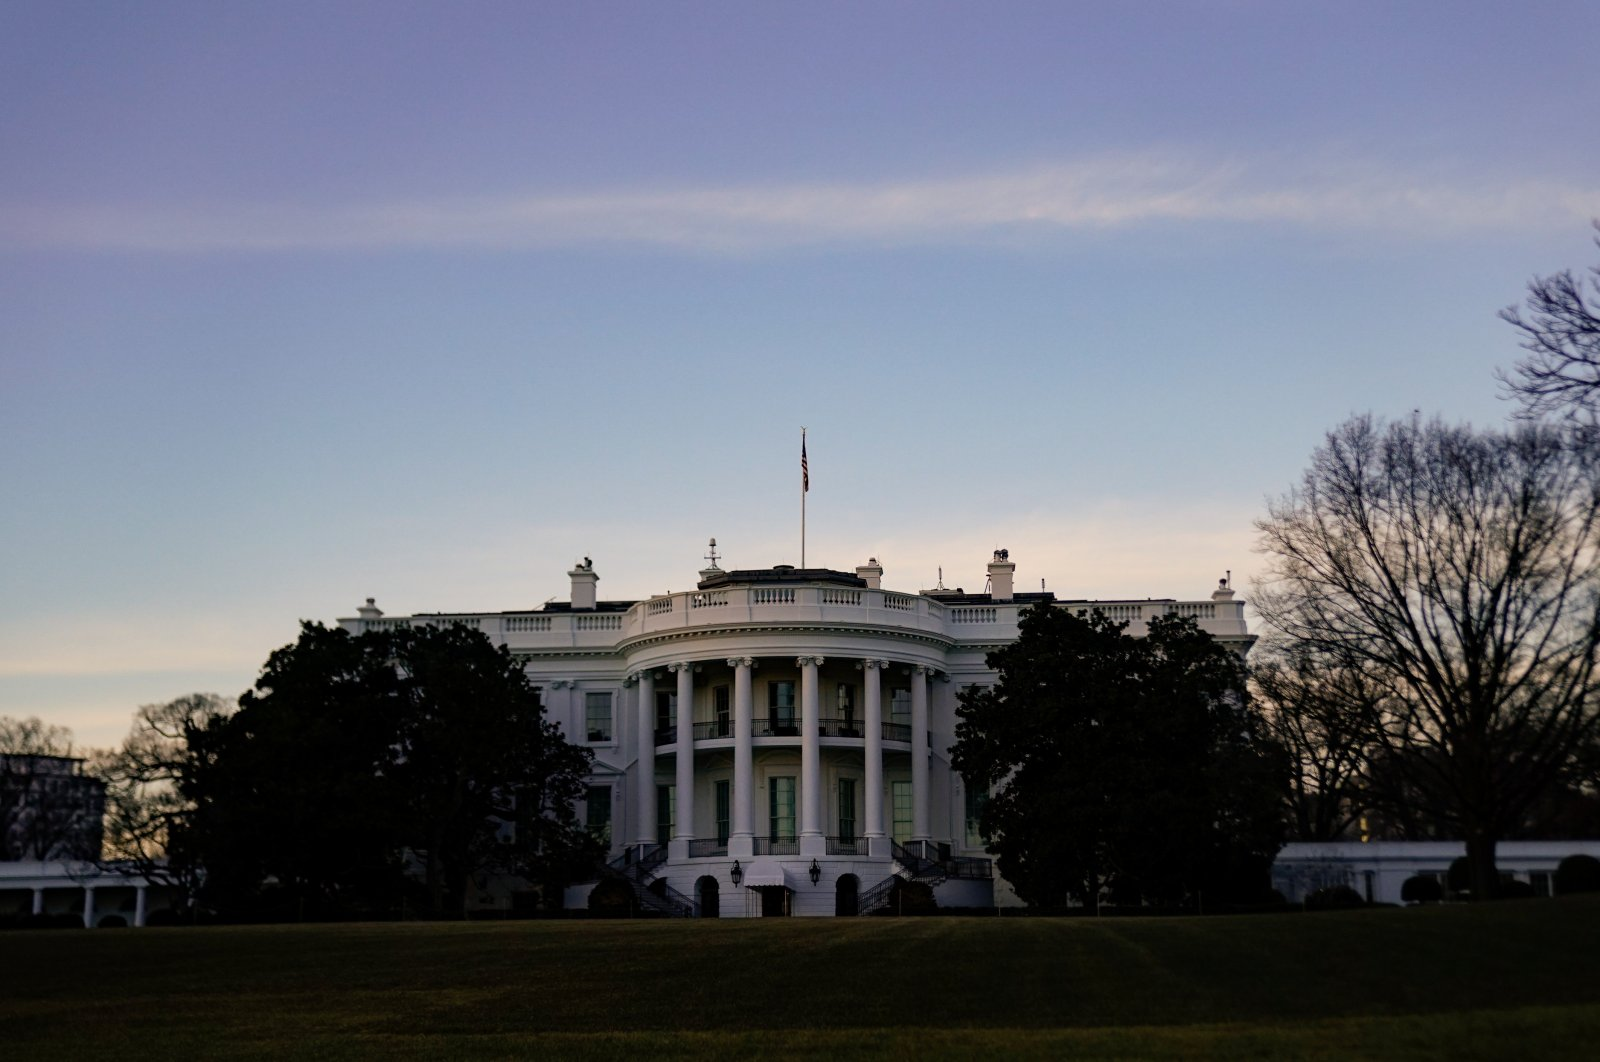 The White House pictured during U.S. President Joe Biden's second week in office, Washington, D.C., the U.S., Jan. 30, 2021. (Reuters Photo)